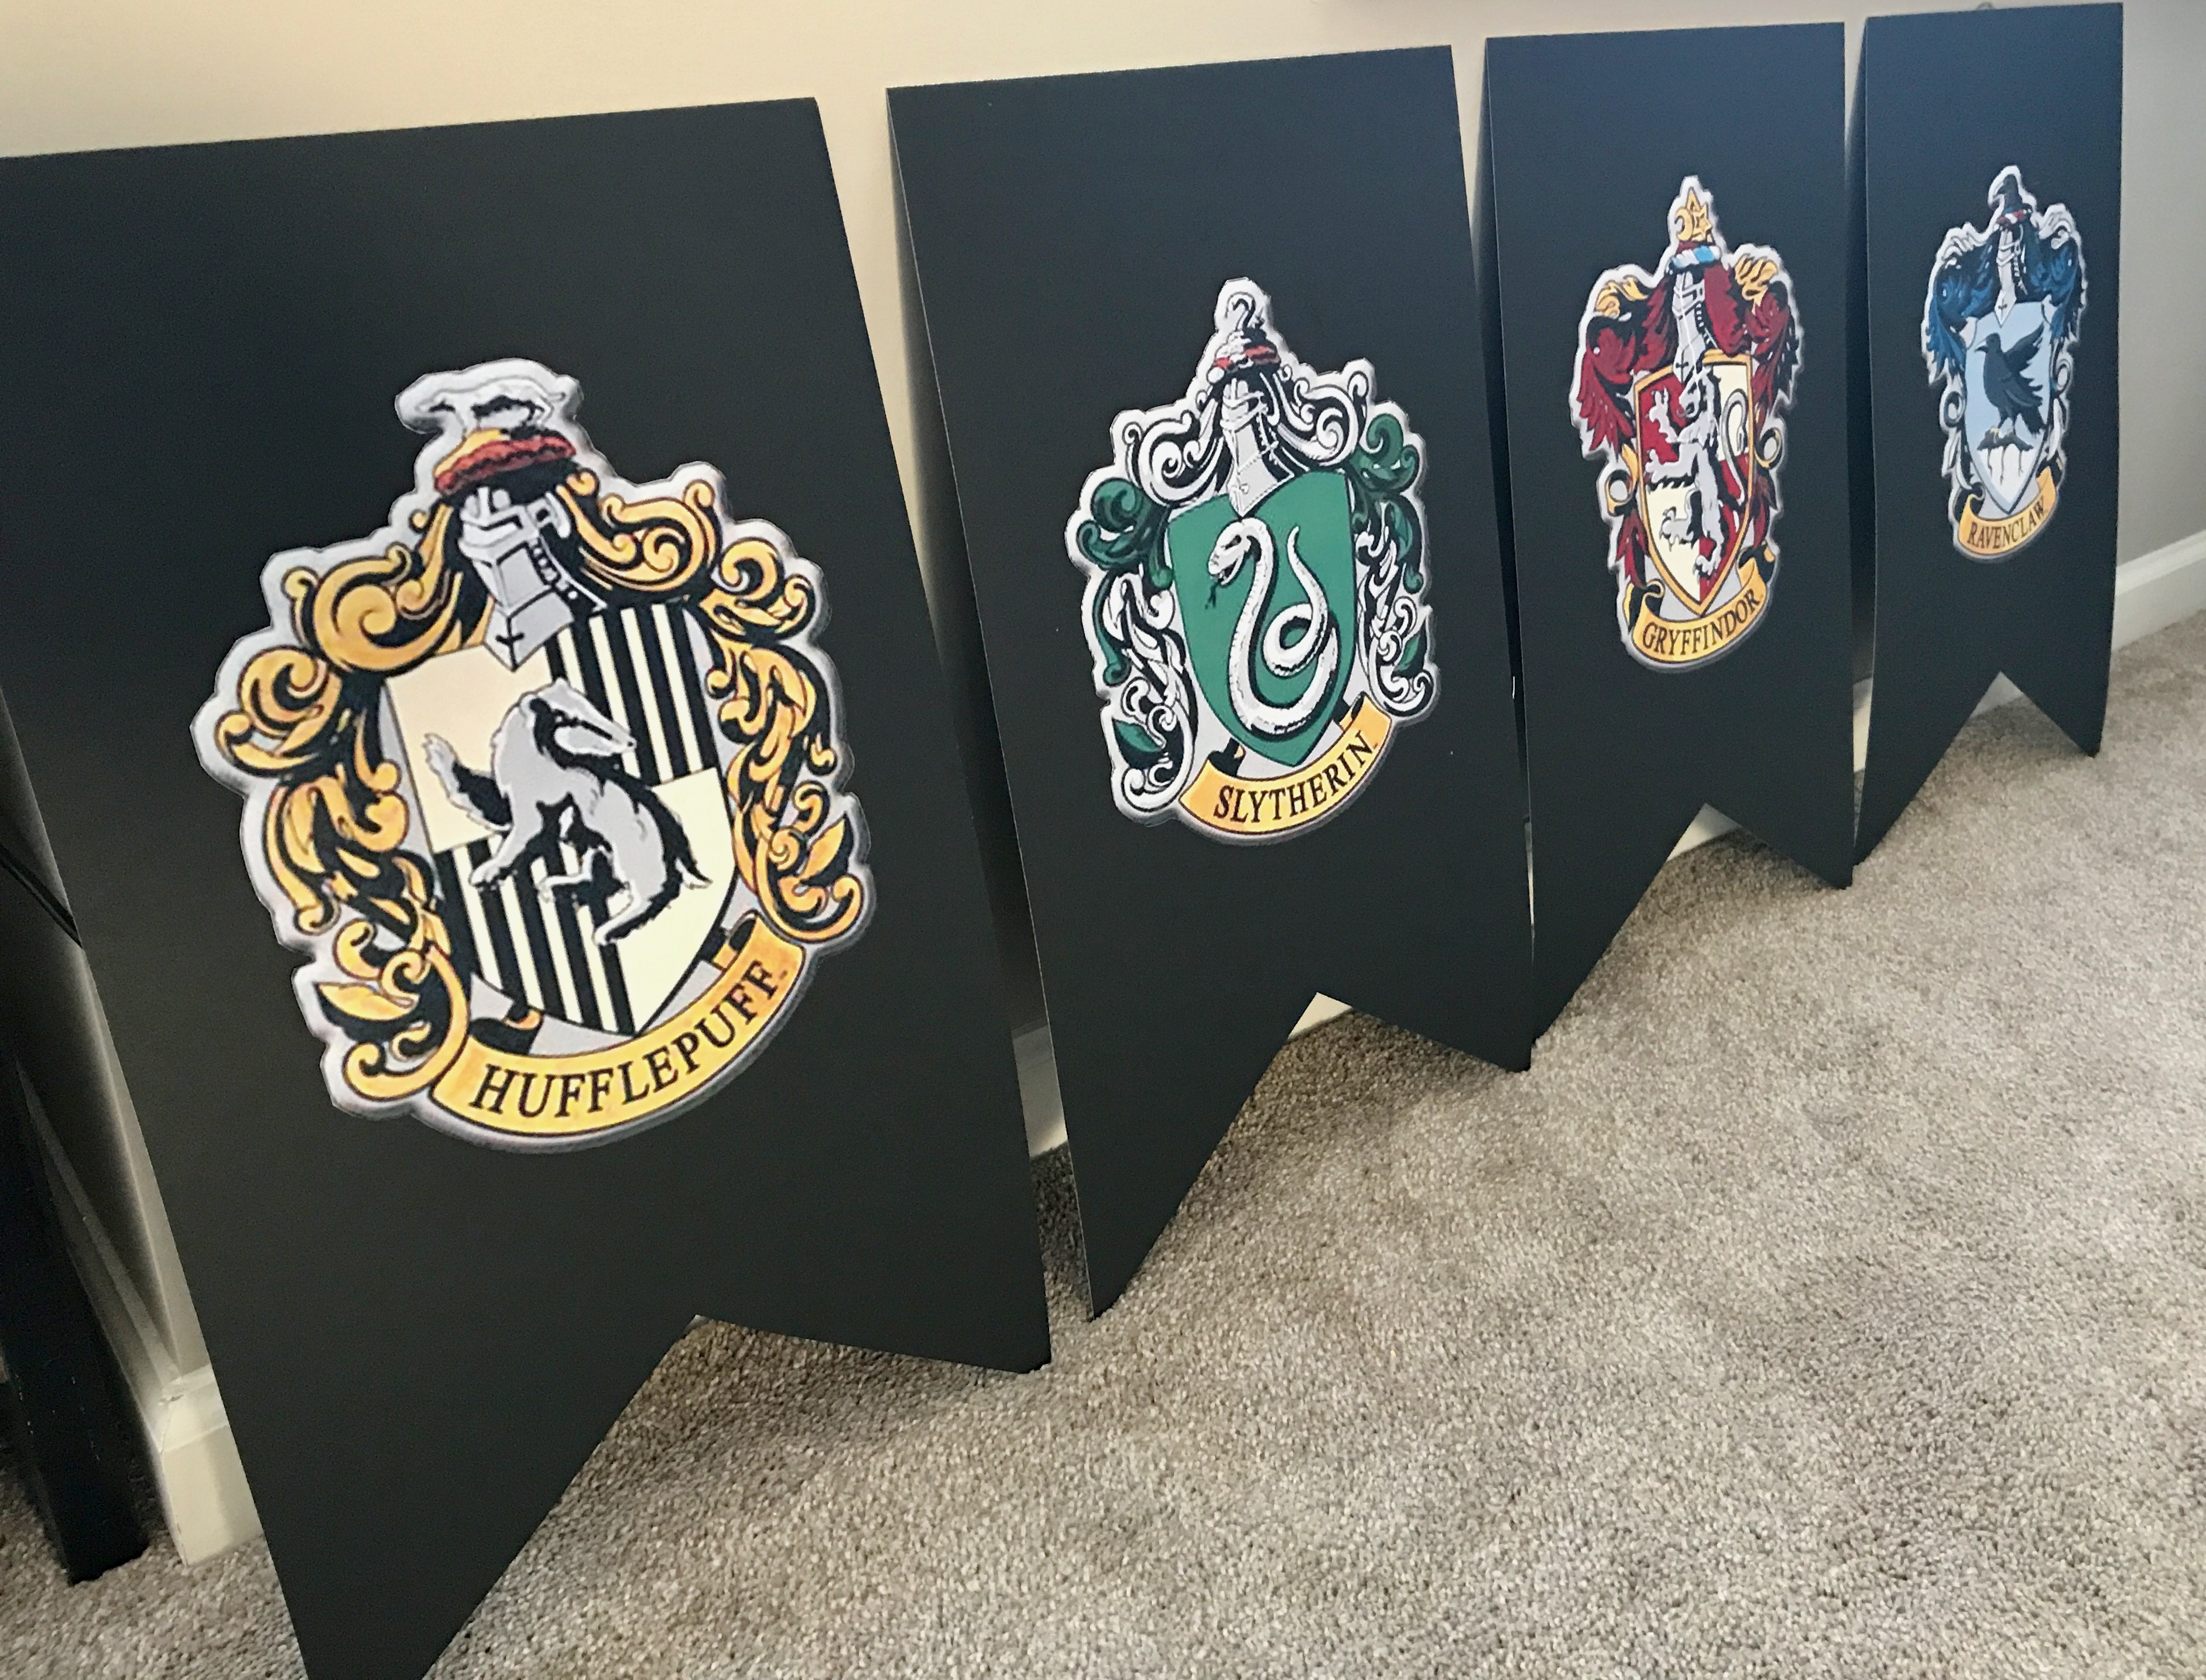 image about Harry Potter House Banners Printable called Hogwarts Residence Banners Printable - 12 months of Contemporary H2o